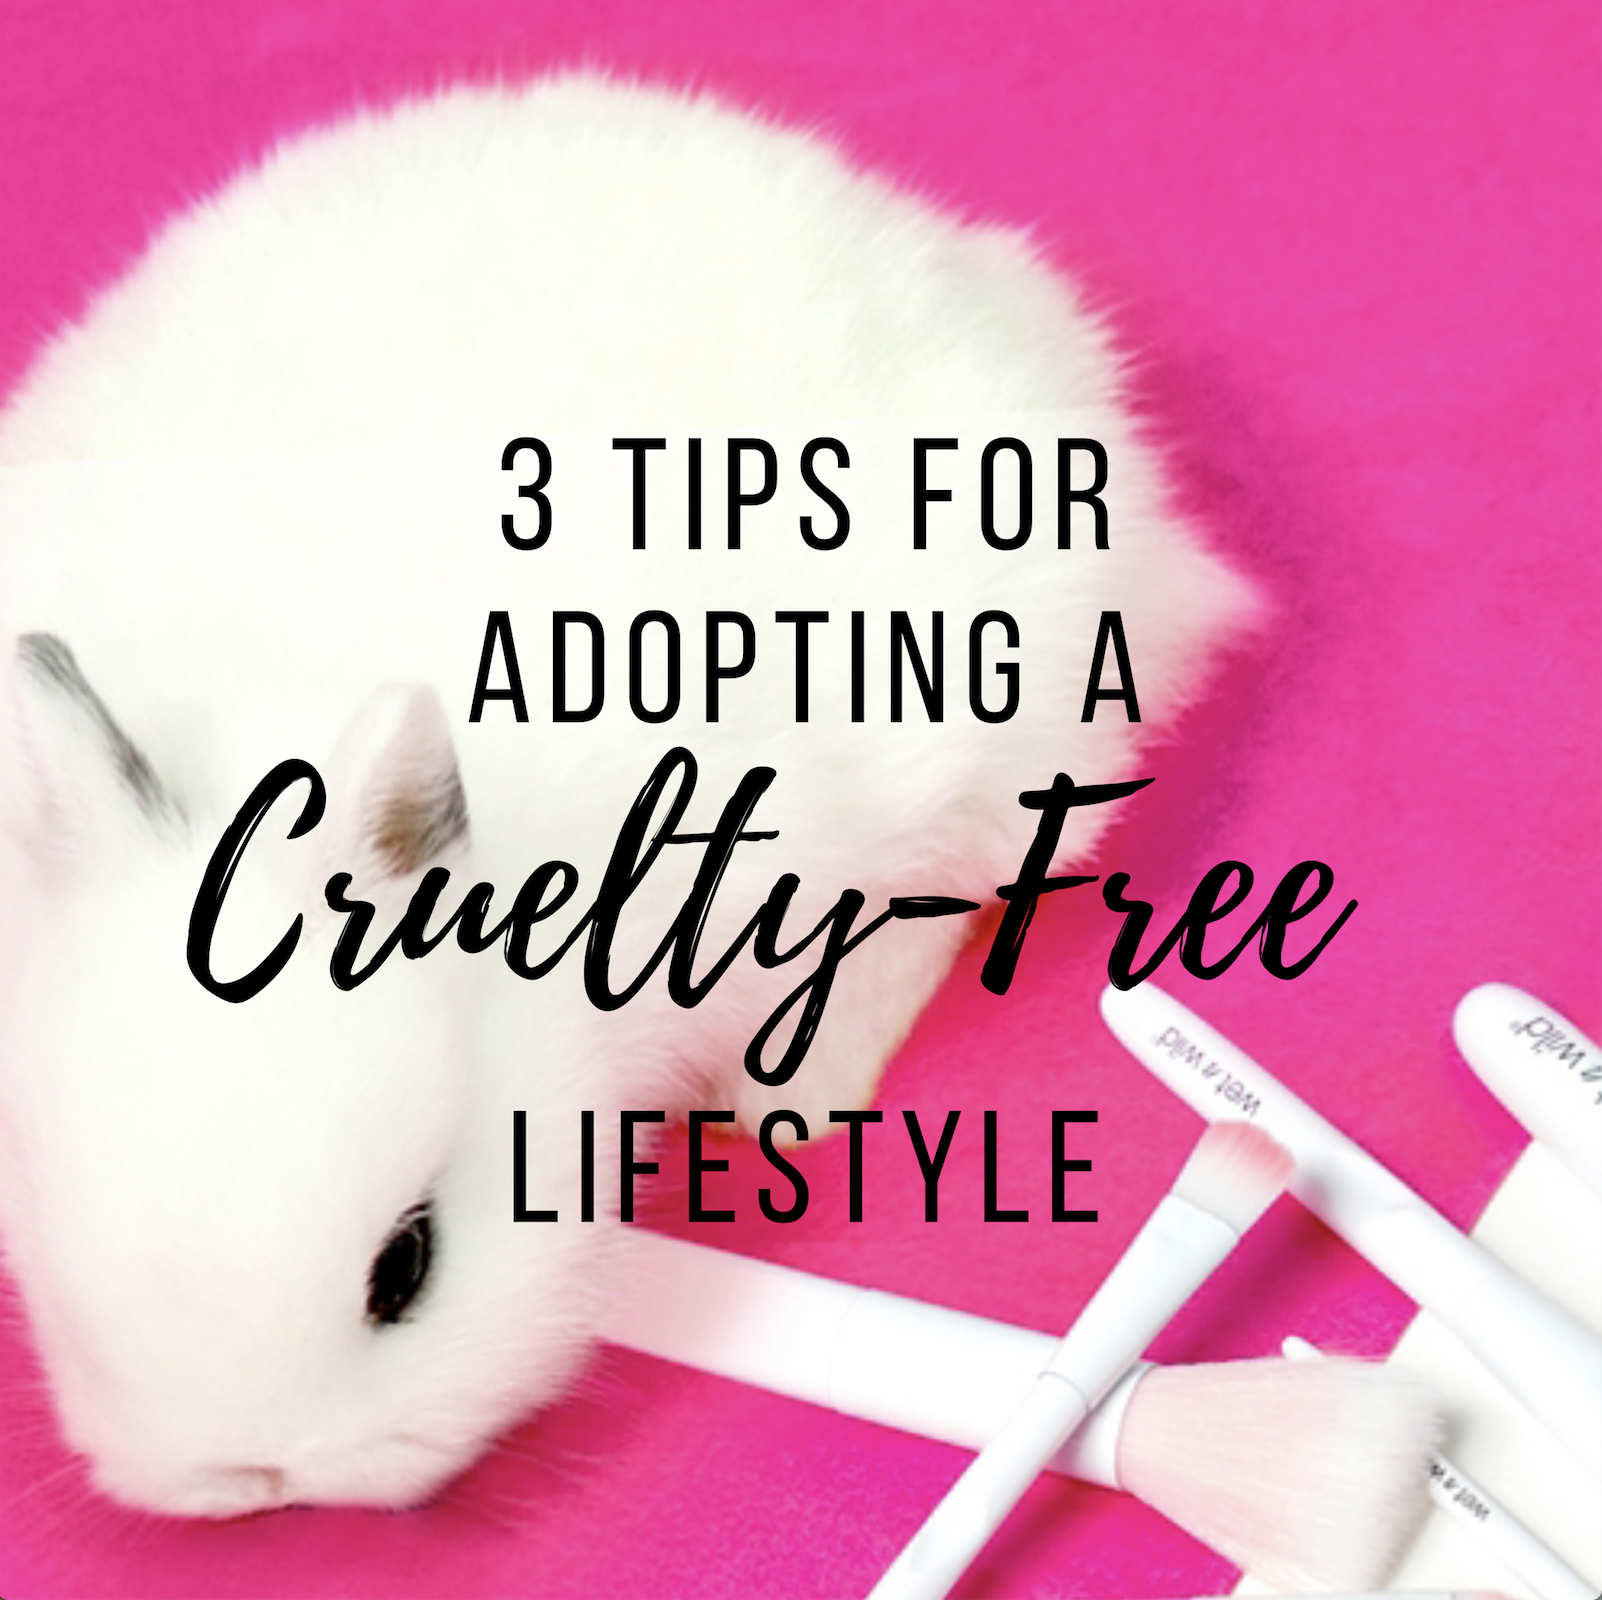 3 Tips for Adopting a Cruelty-Free Lifestyle